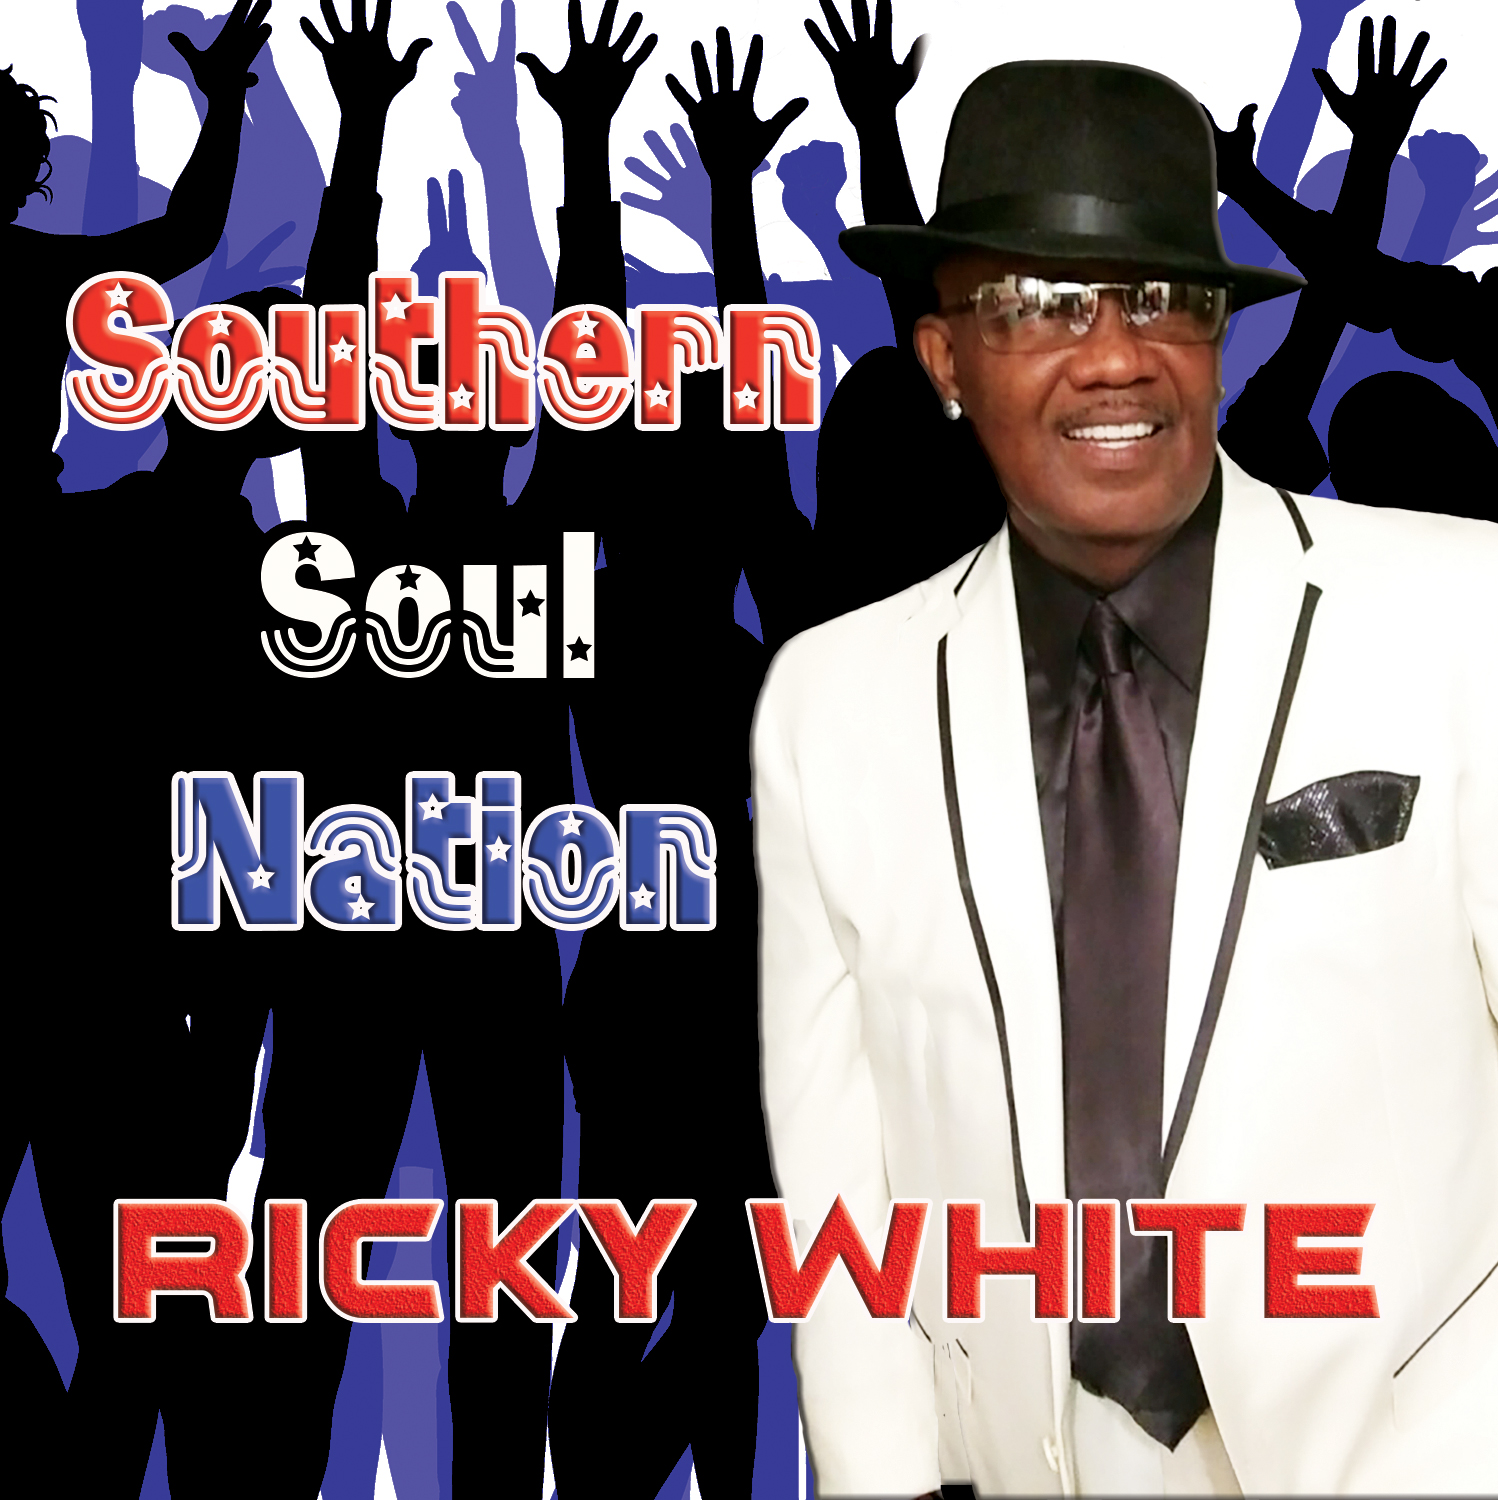 Soutehrn Soul Nation